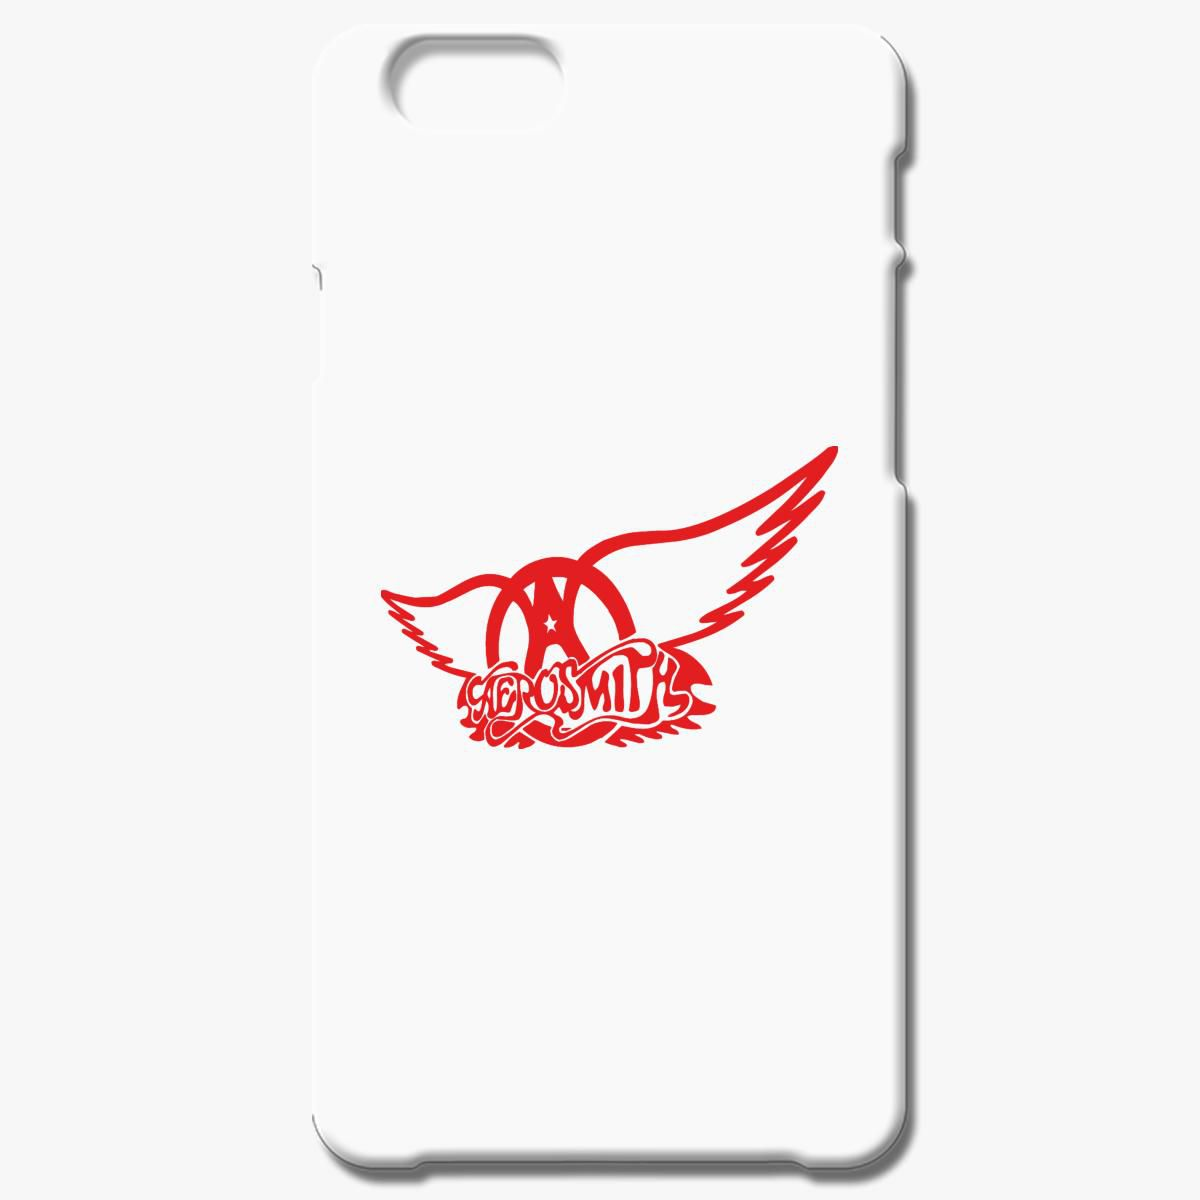 Aerosmith Logo Iphone 6 6s Plus Case